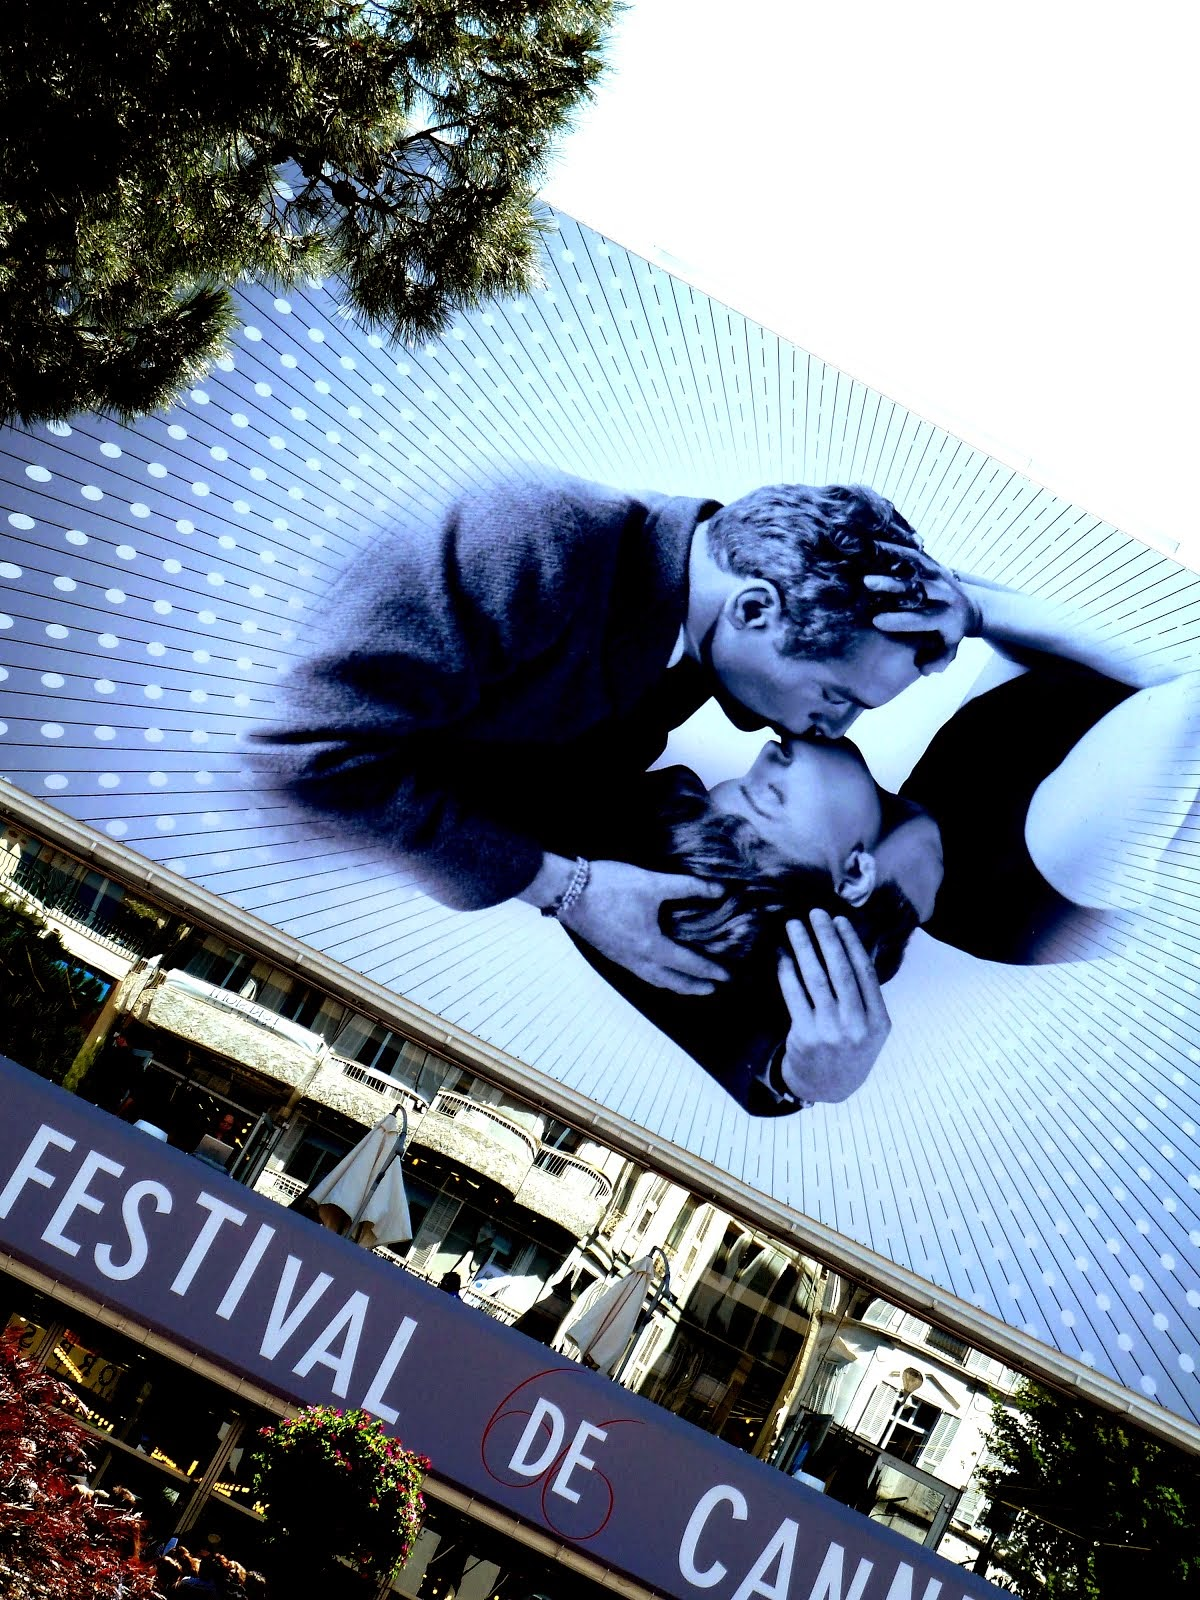 66th Cannes Film Festival 2013